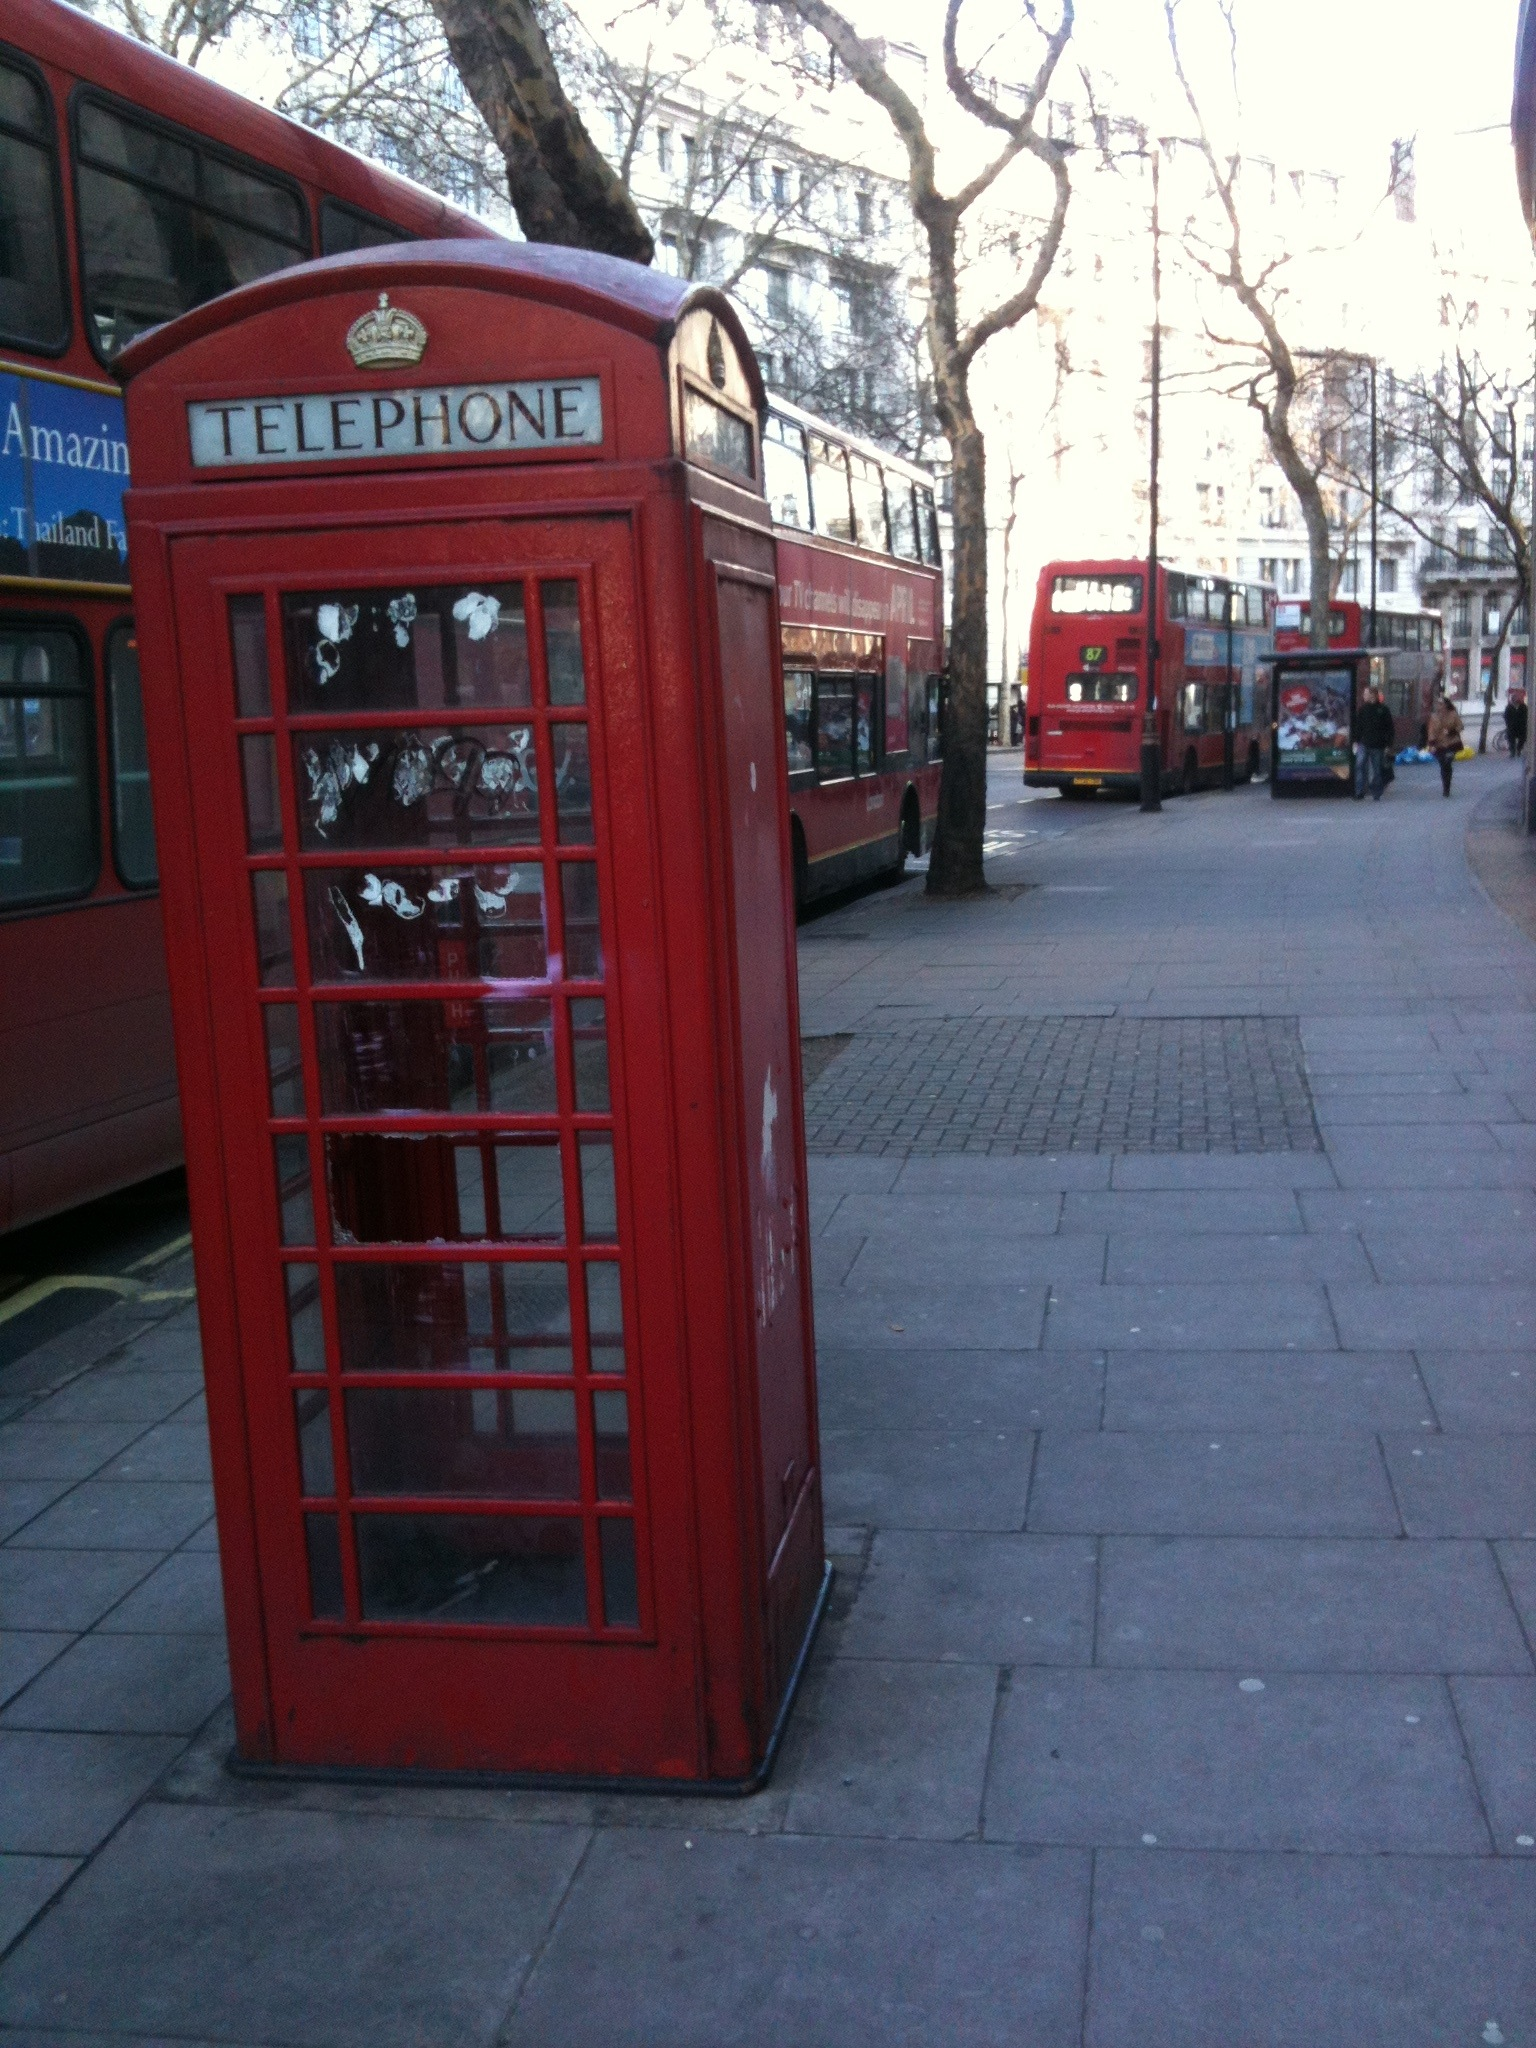 Funky Friday Photo: Let's Paint London Red!